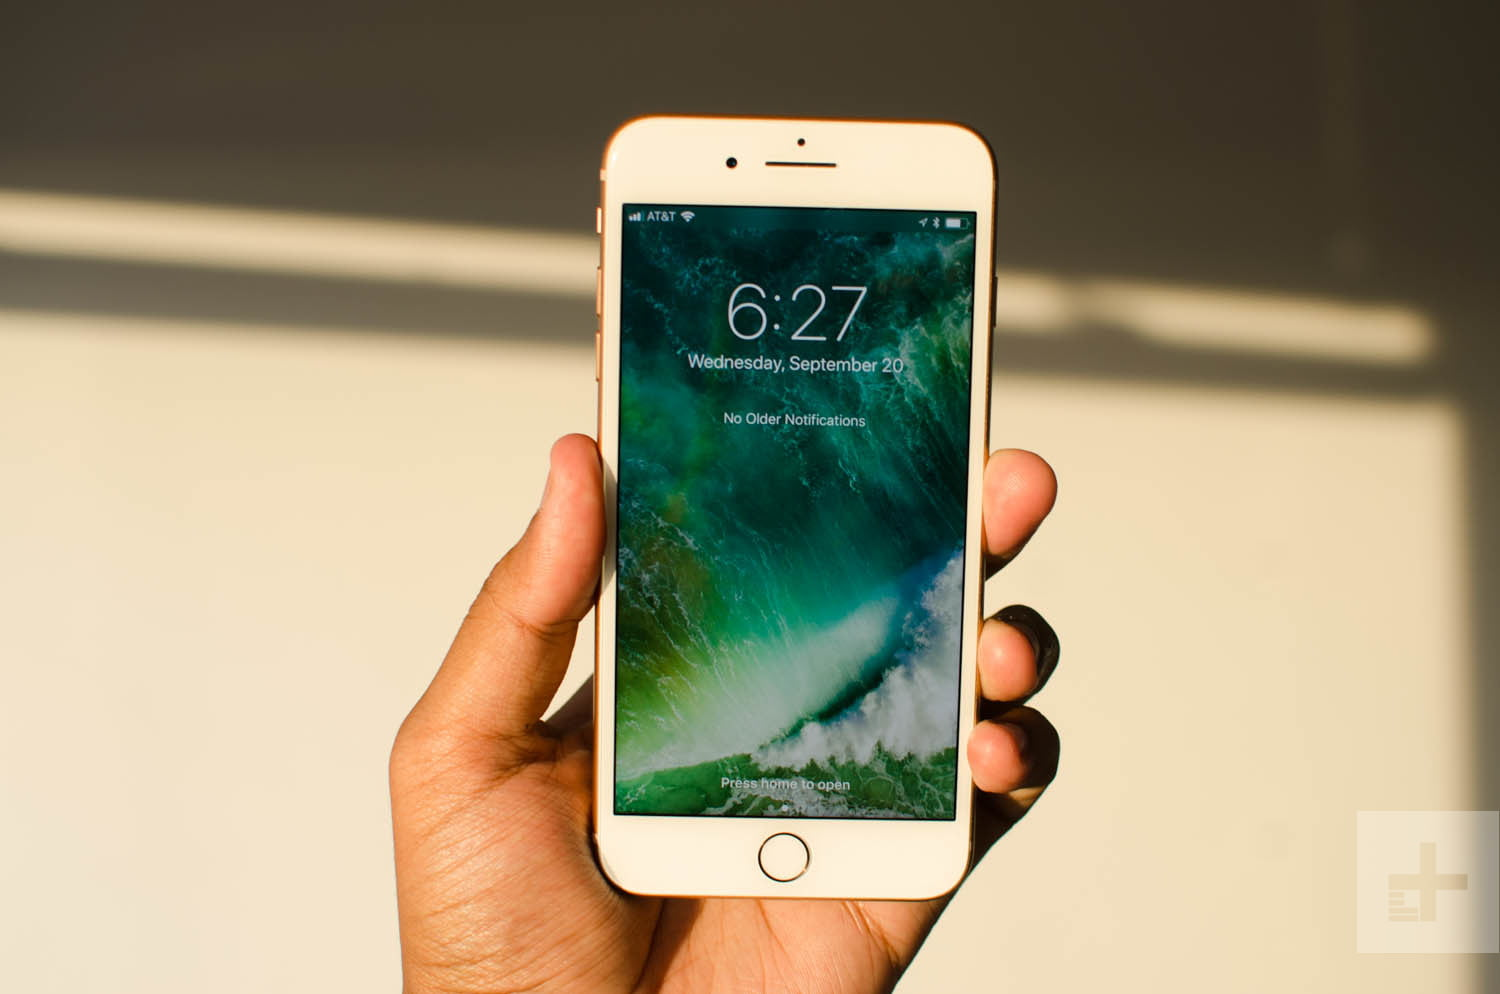 iPhone 8 Plus Review: Faster, Better, More! | Digital Trends